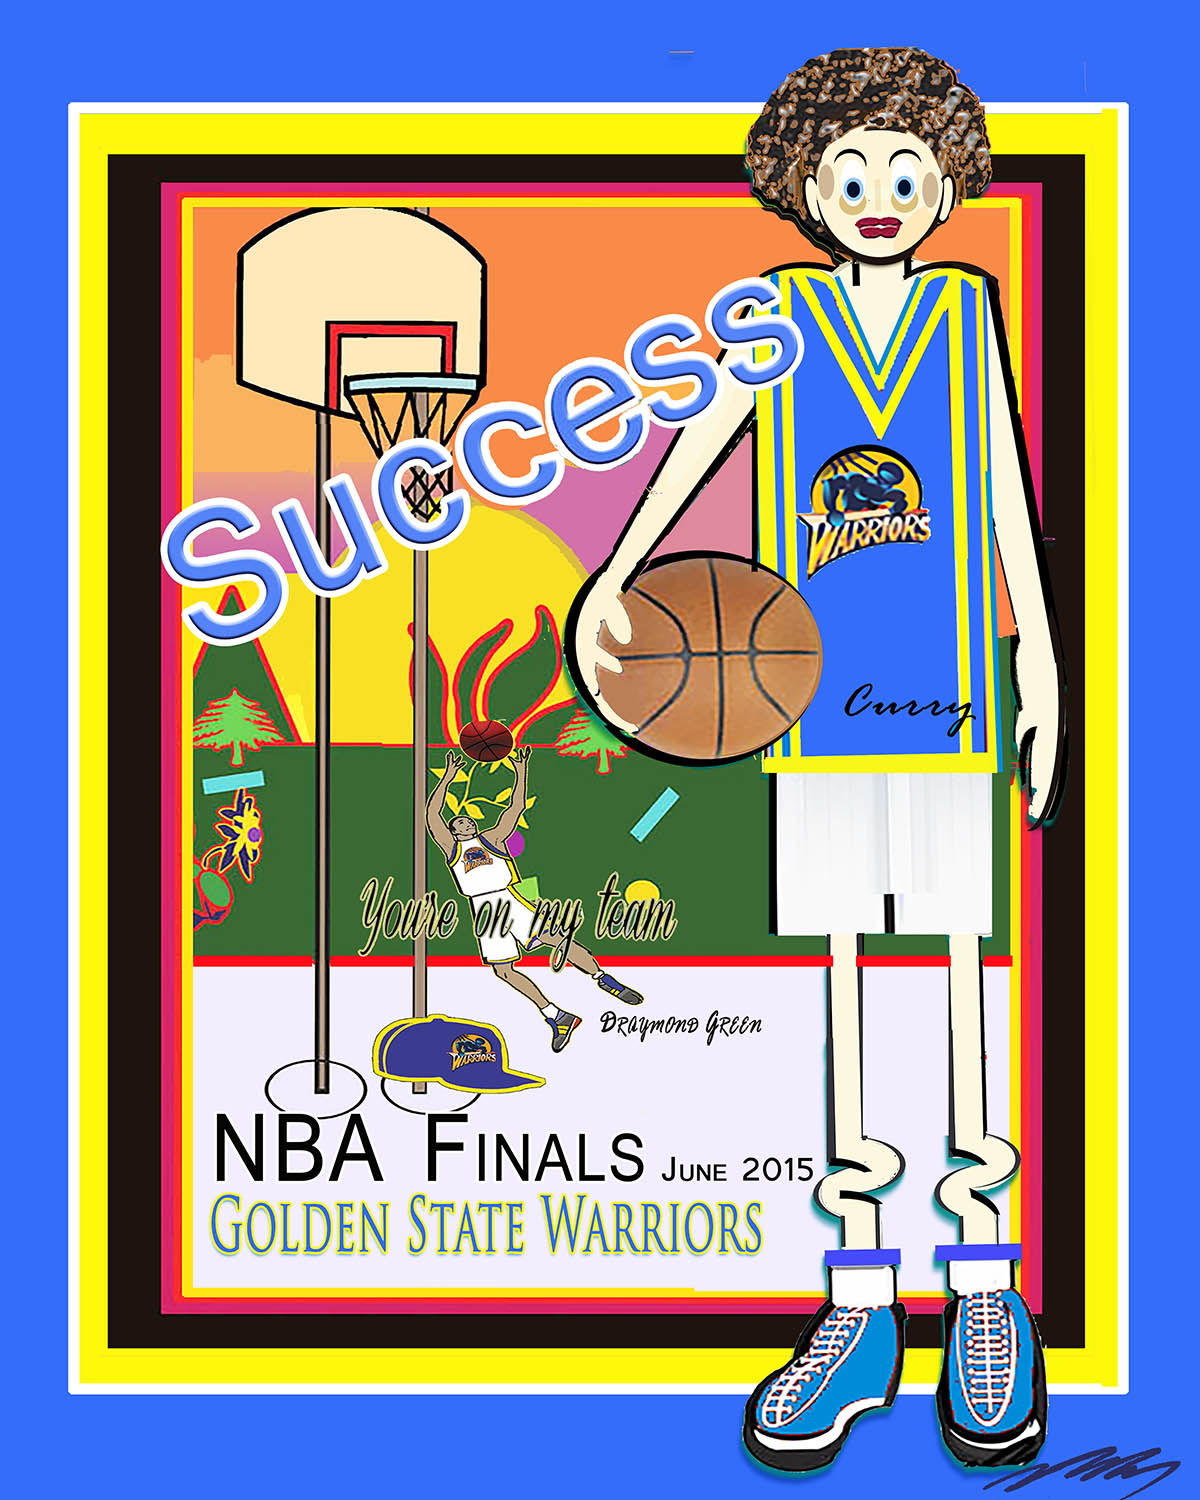 GS WRRIOR -Stephen Curry